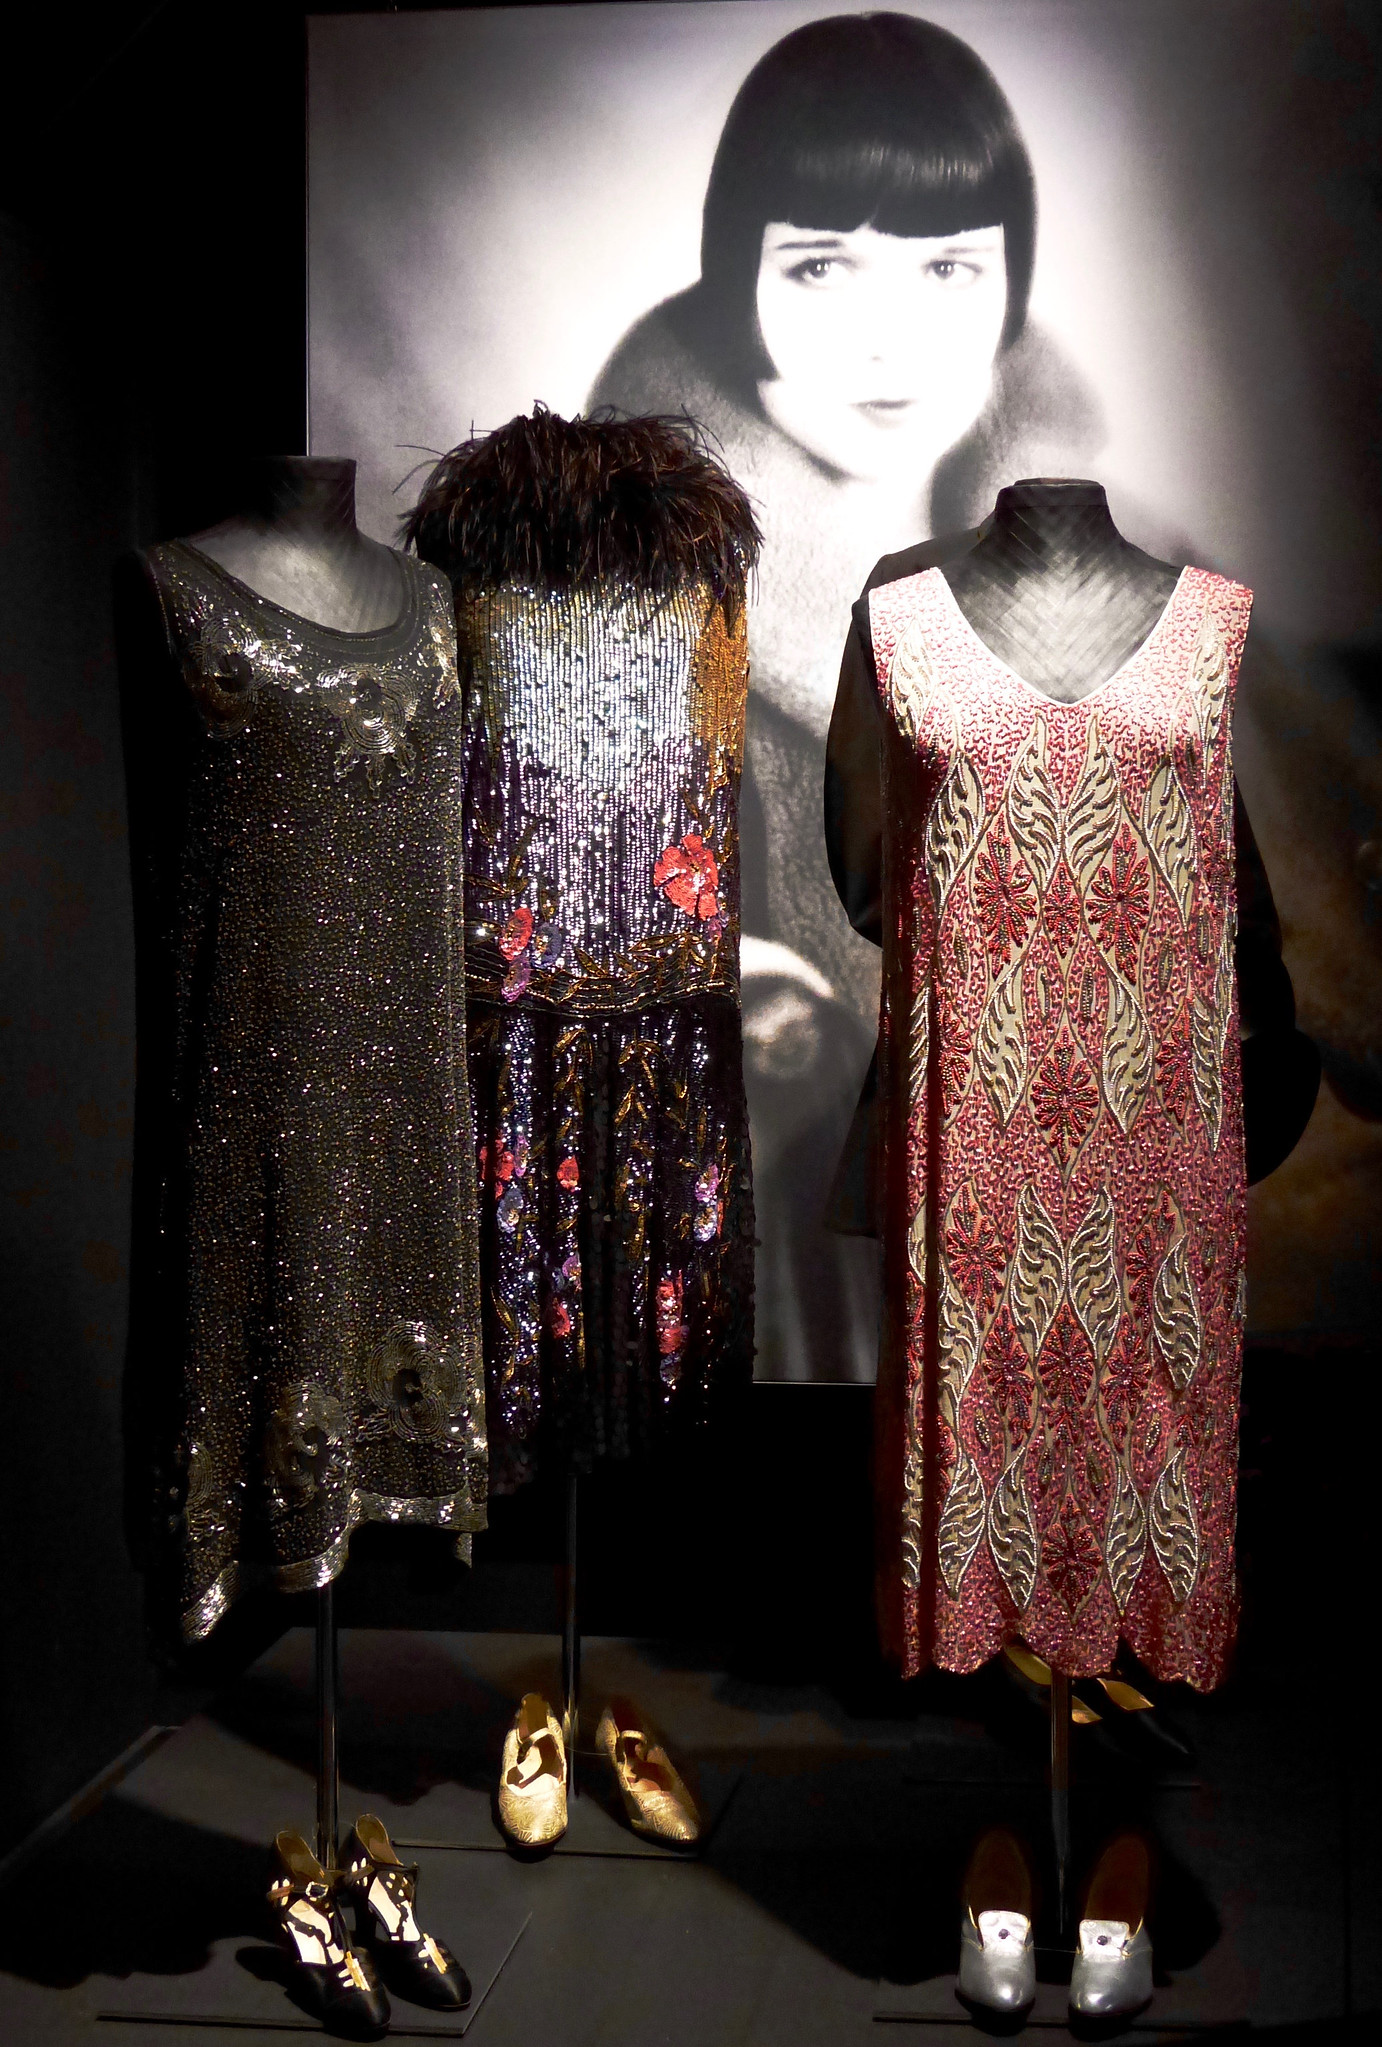 1920s fashion at the Industriemuseum Textilfabrik Cromford in Ratingen, Germany. Credit Geolina163